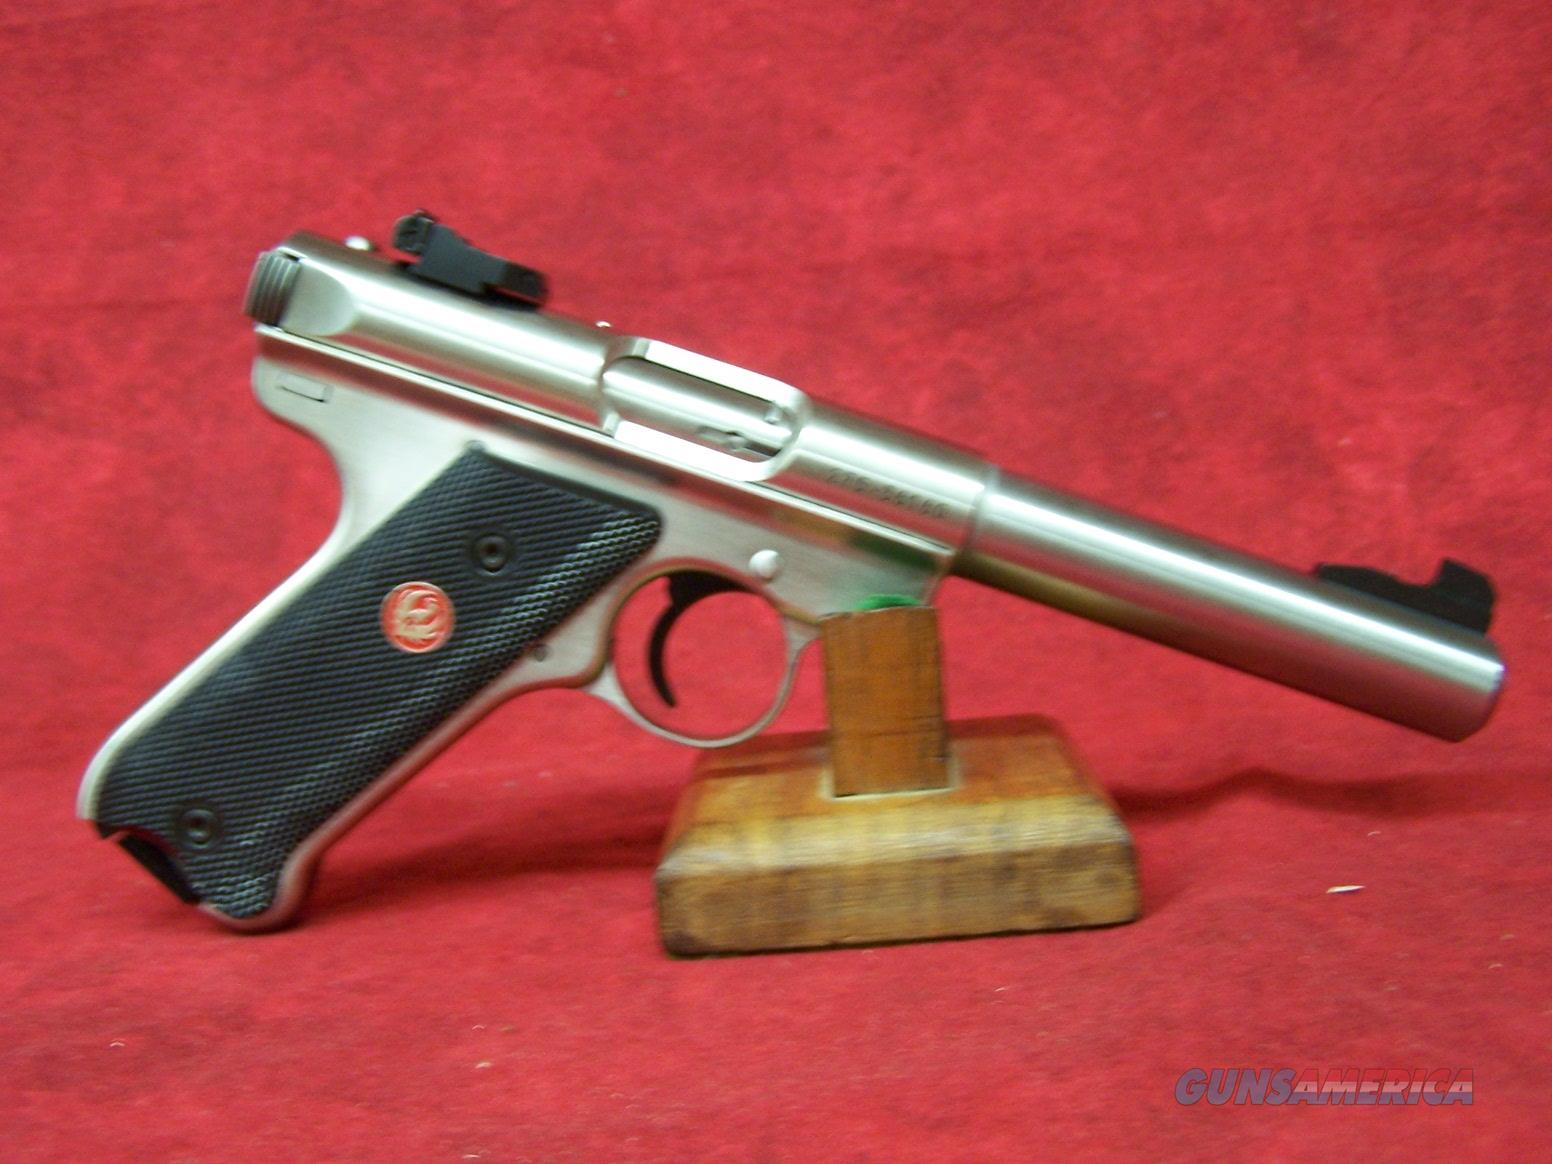 "Ruger Mark III 512 Target .22 Long Rifle 5.5"" Bull Barrel Stainless Steel Finish (10103)  Guns > Pistols > Ruger Semi-Auto Pistols > Mark I/II/III/IV Family"